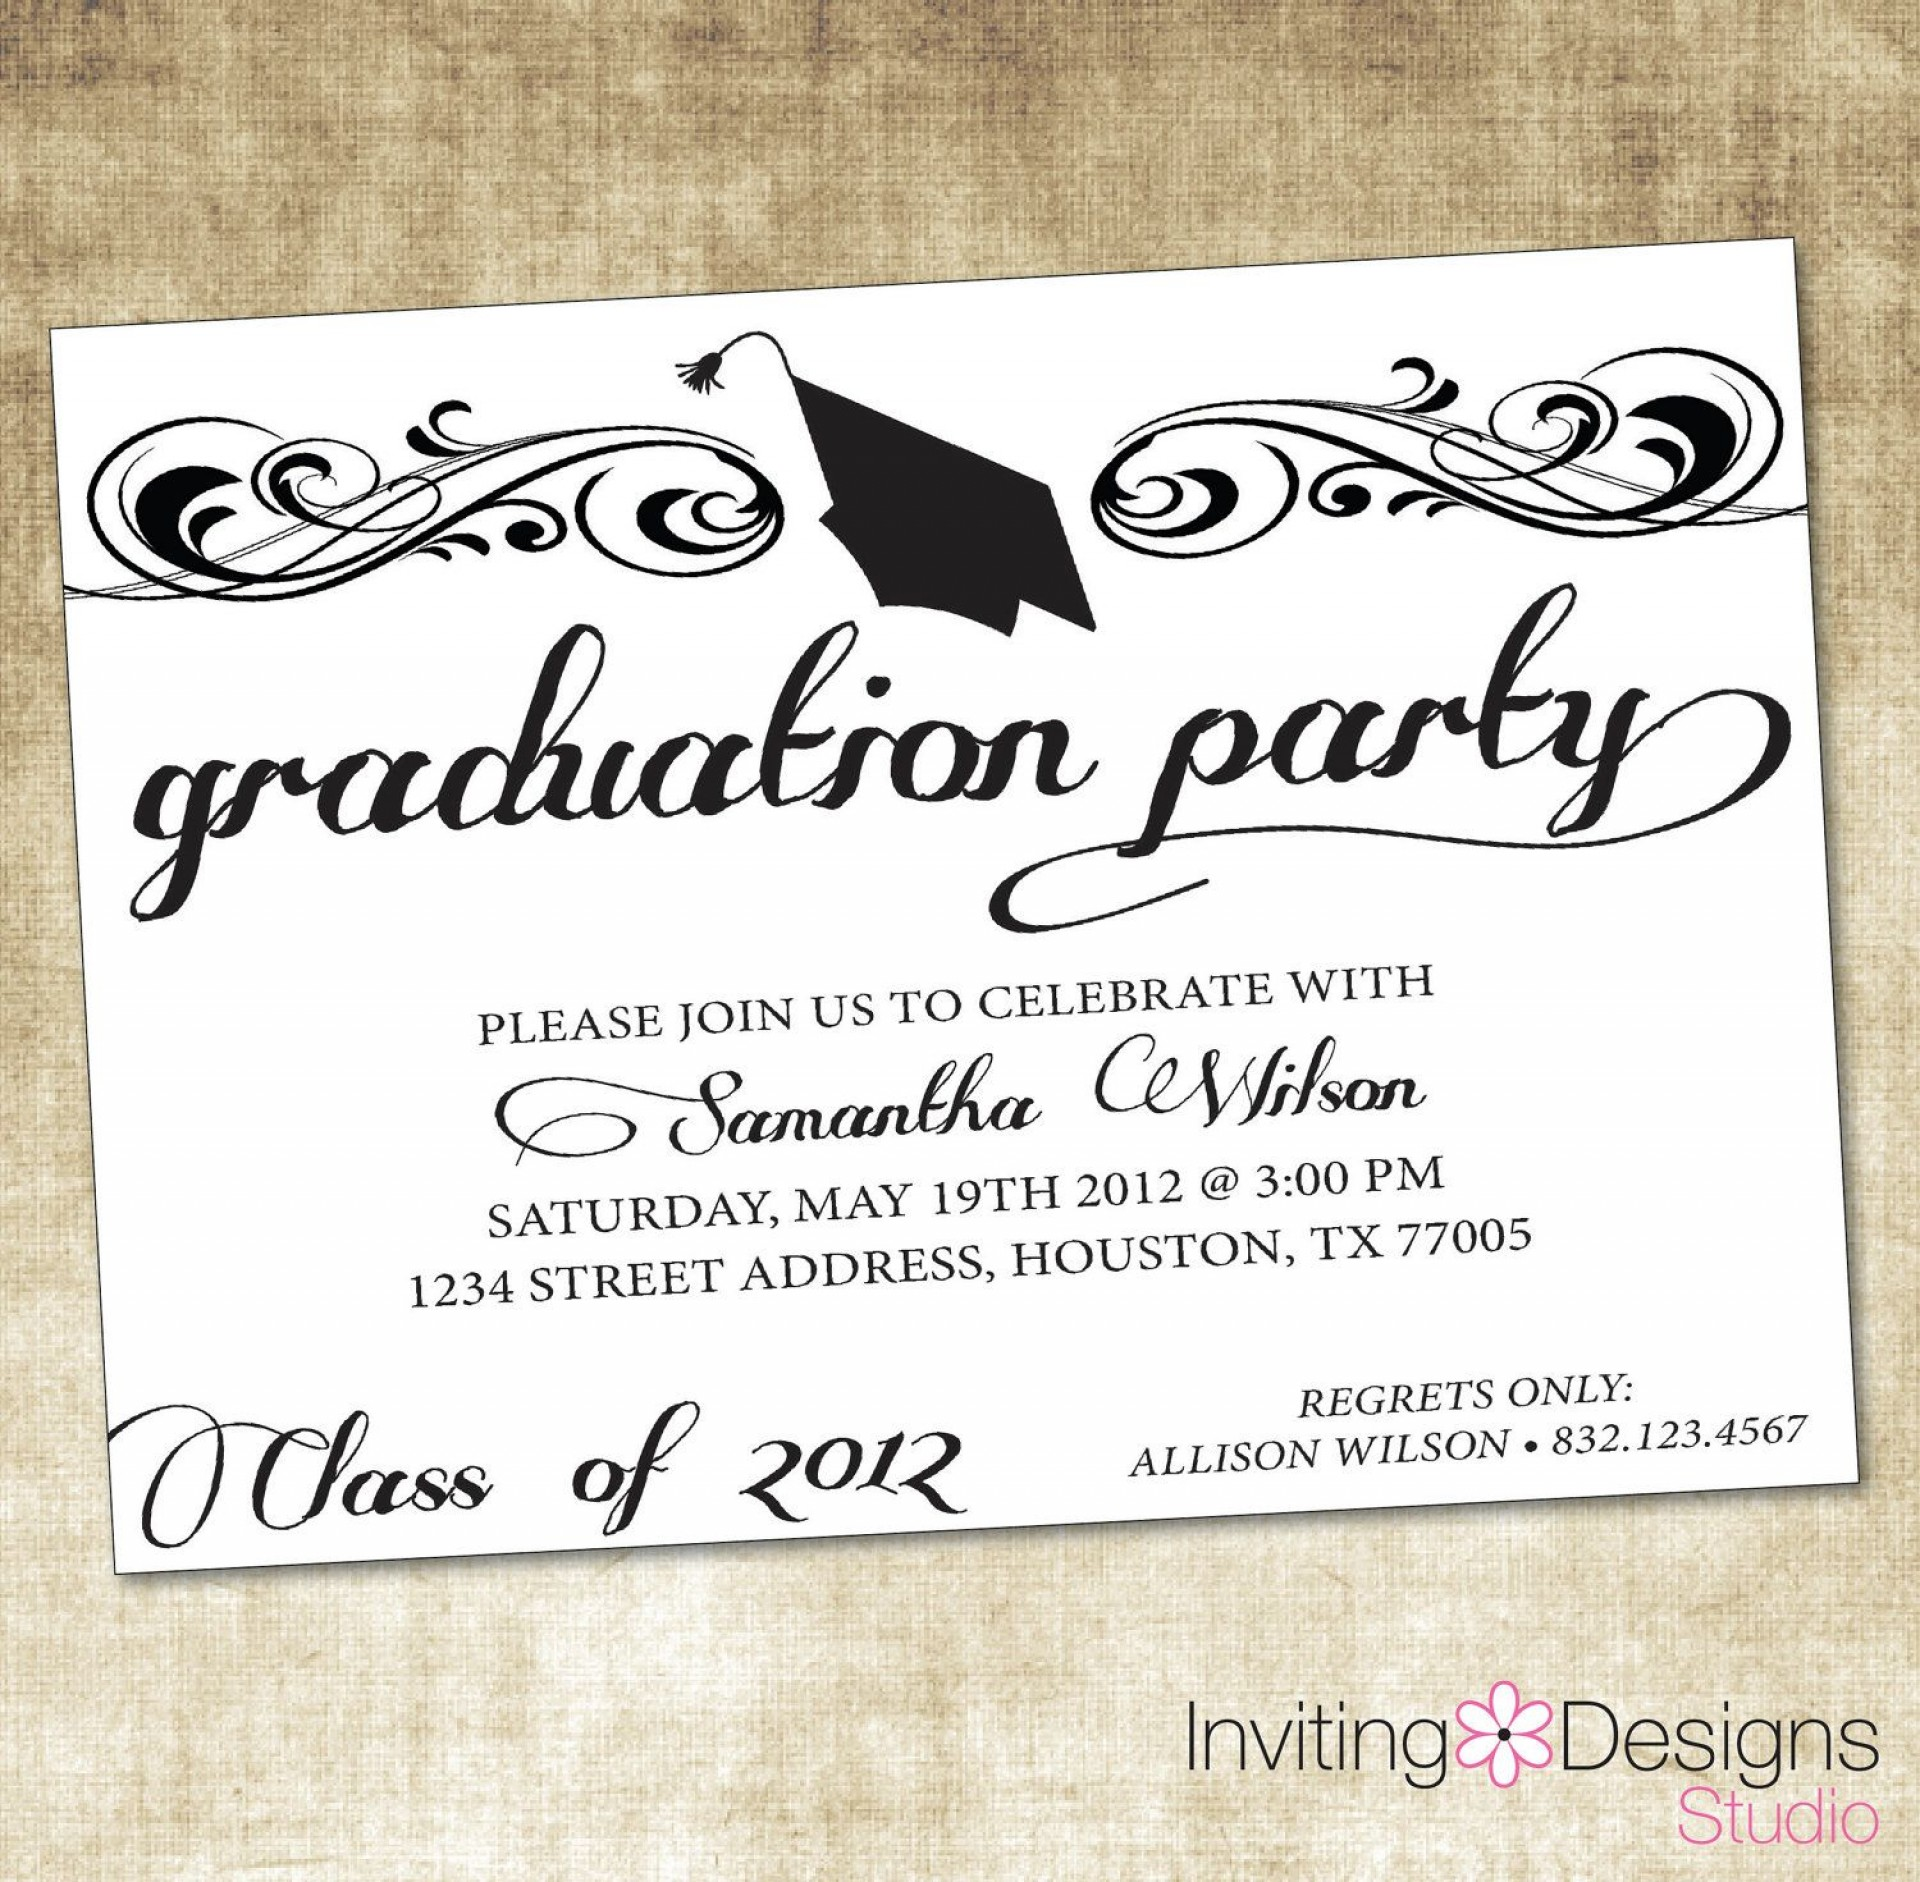 000 Marvelou College Graduation Invitation Template Highest Quality  Party Free For Word1920